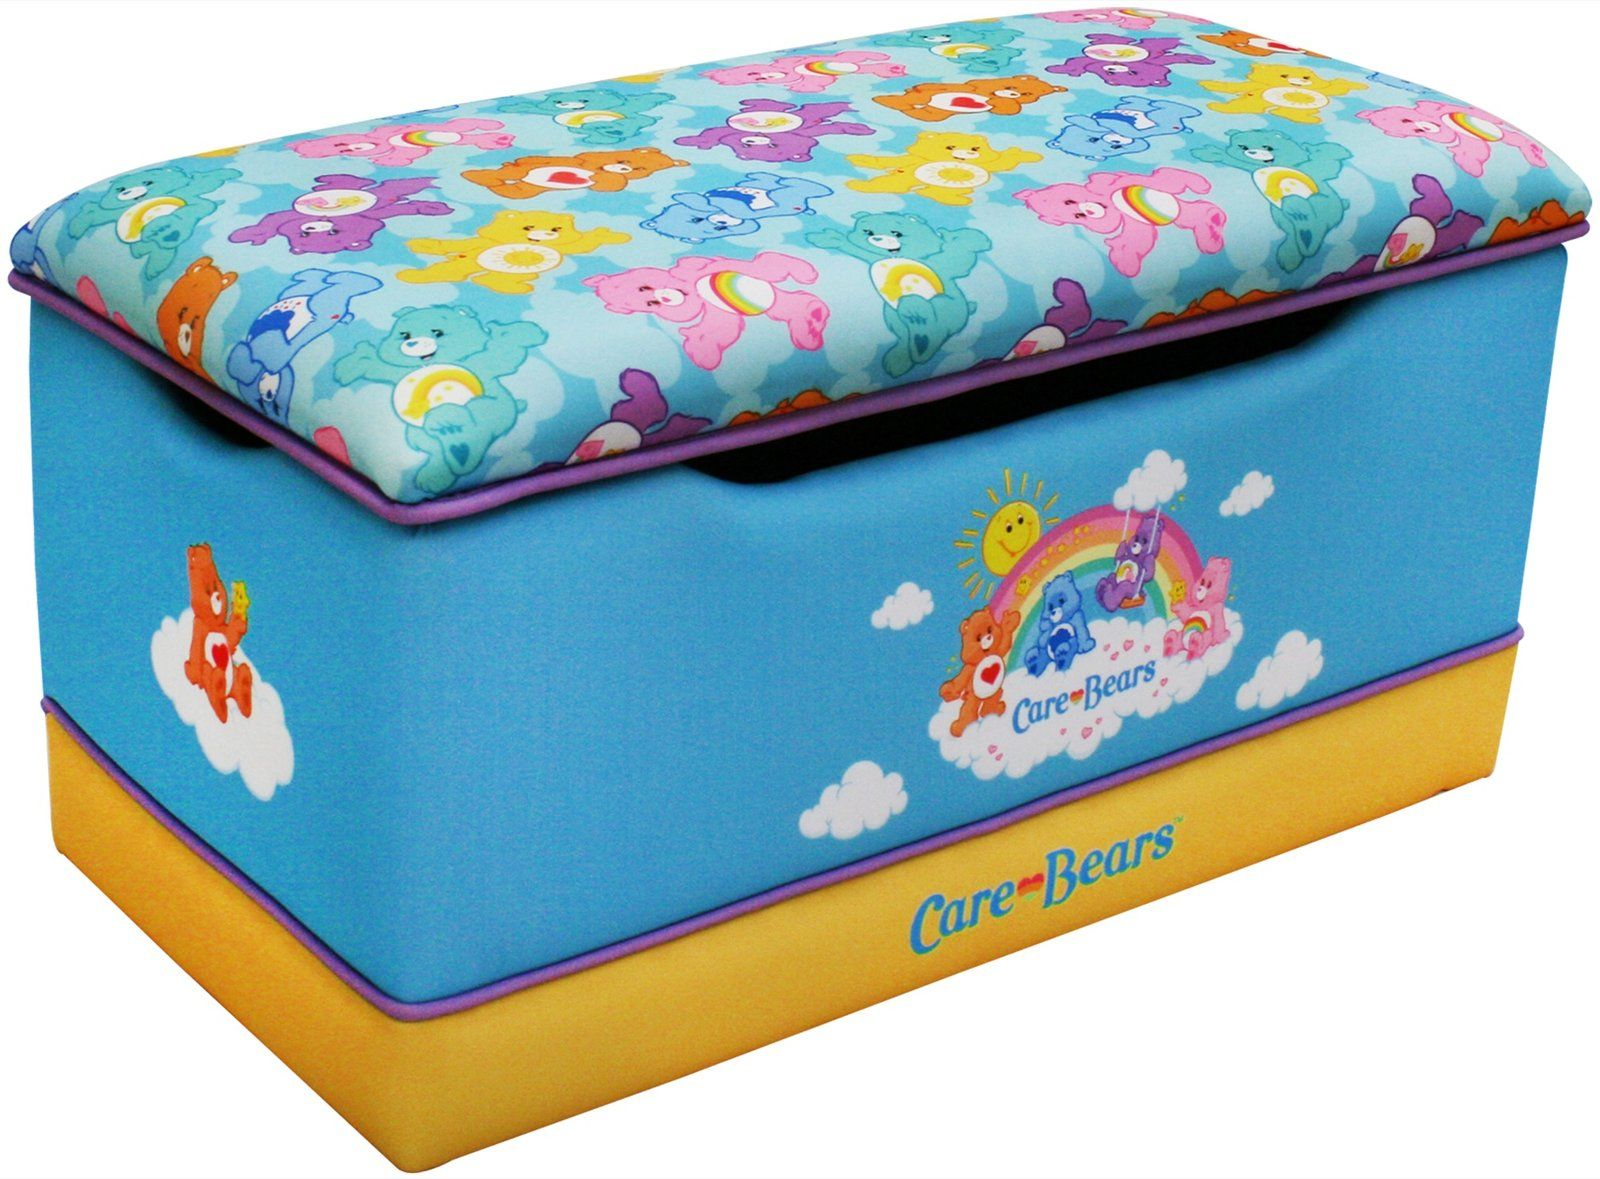 care bears nursery Shop for other Care Bears products